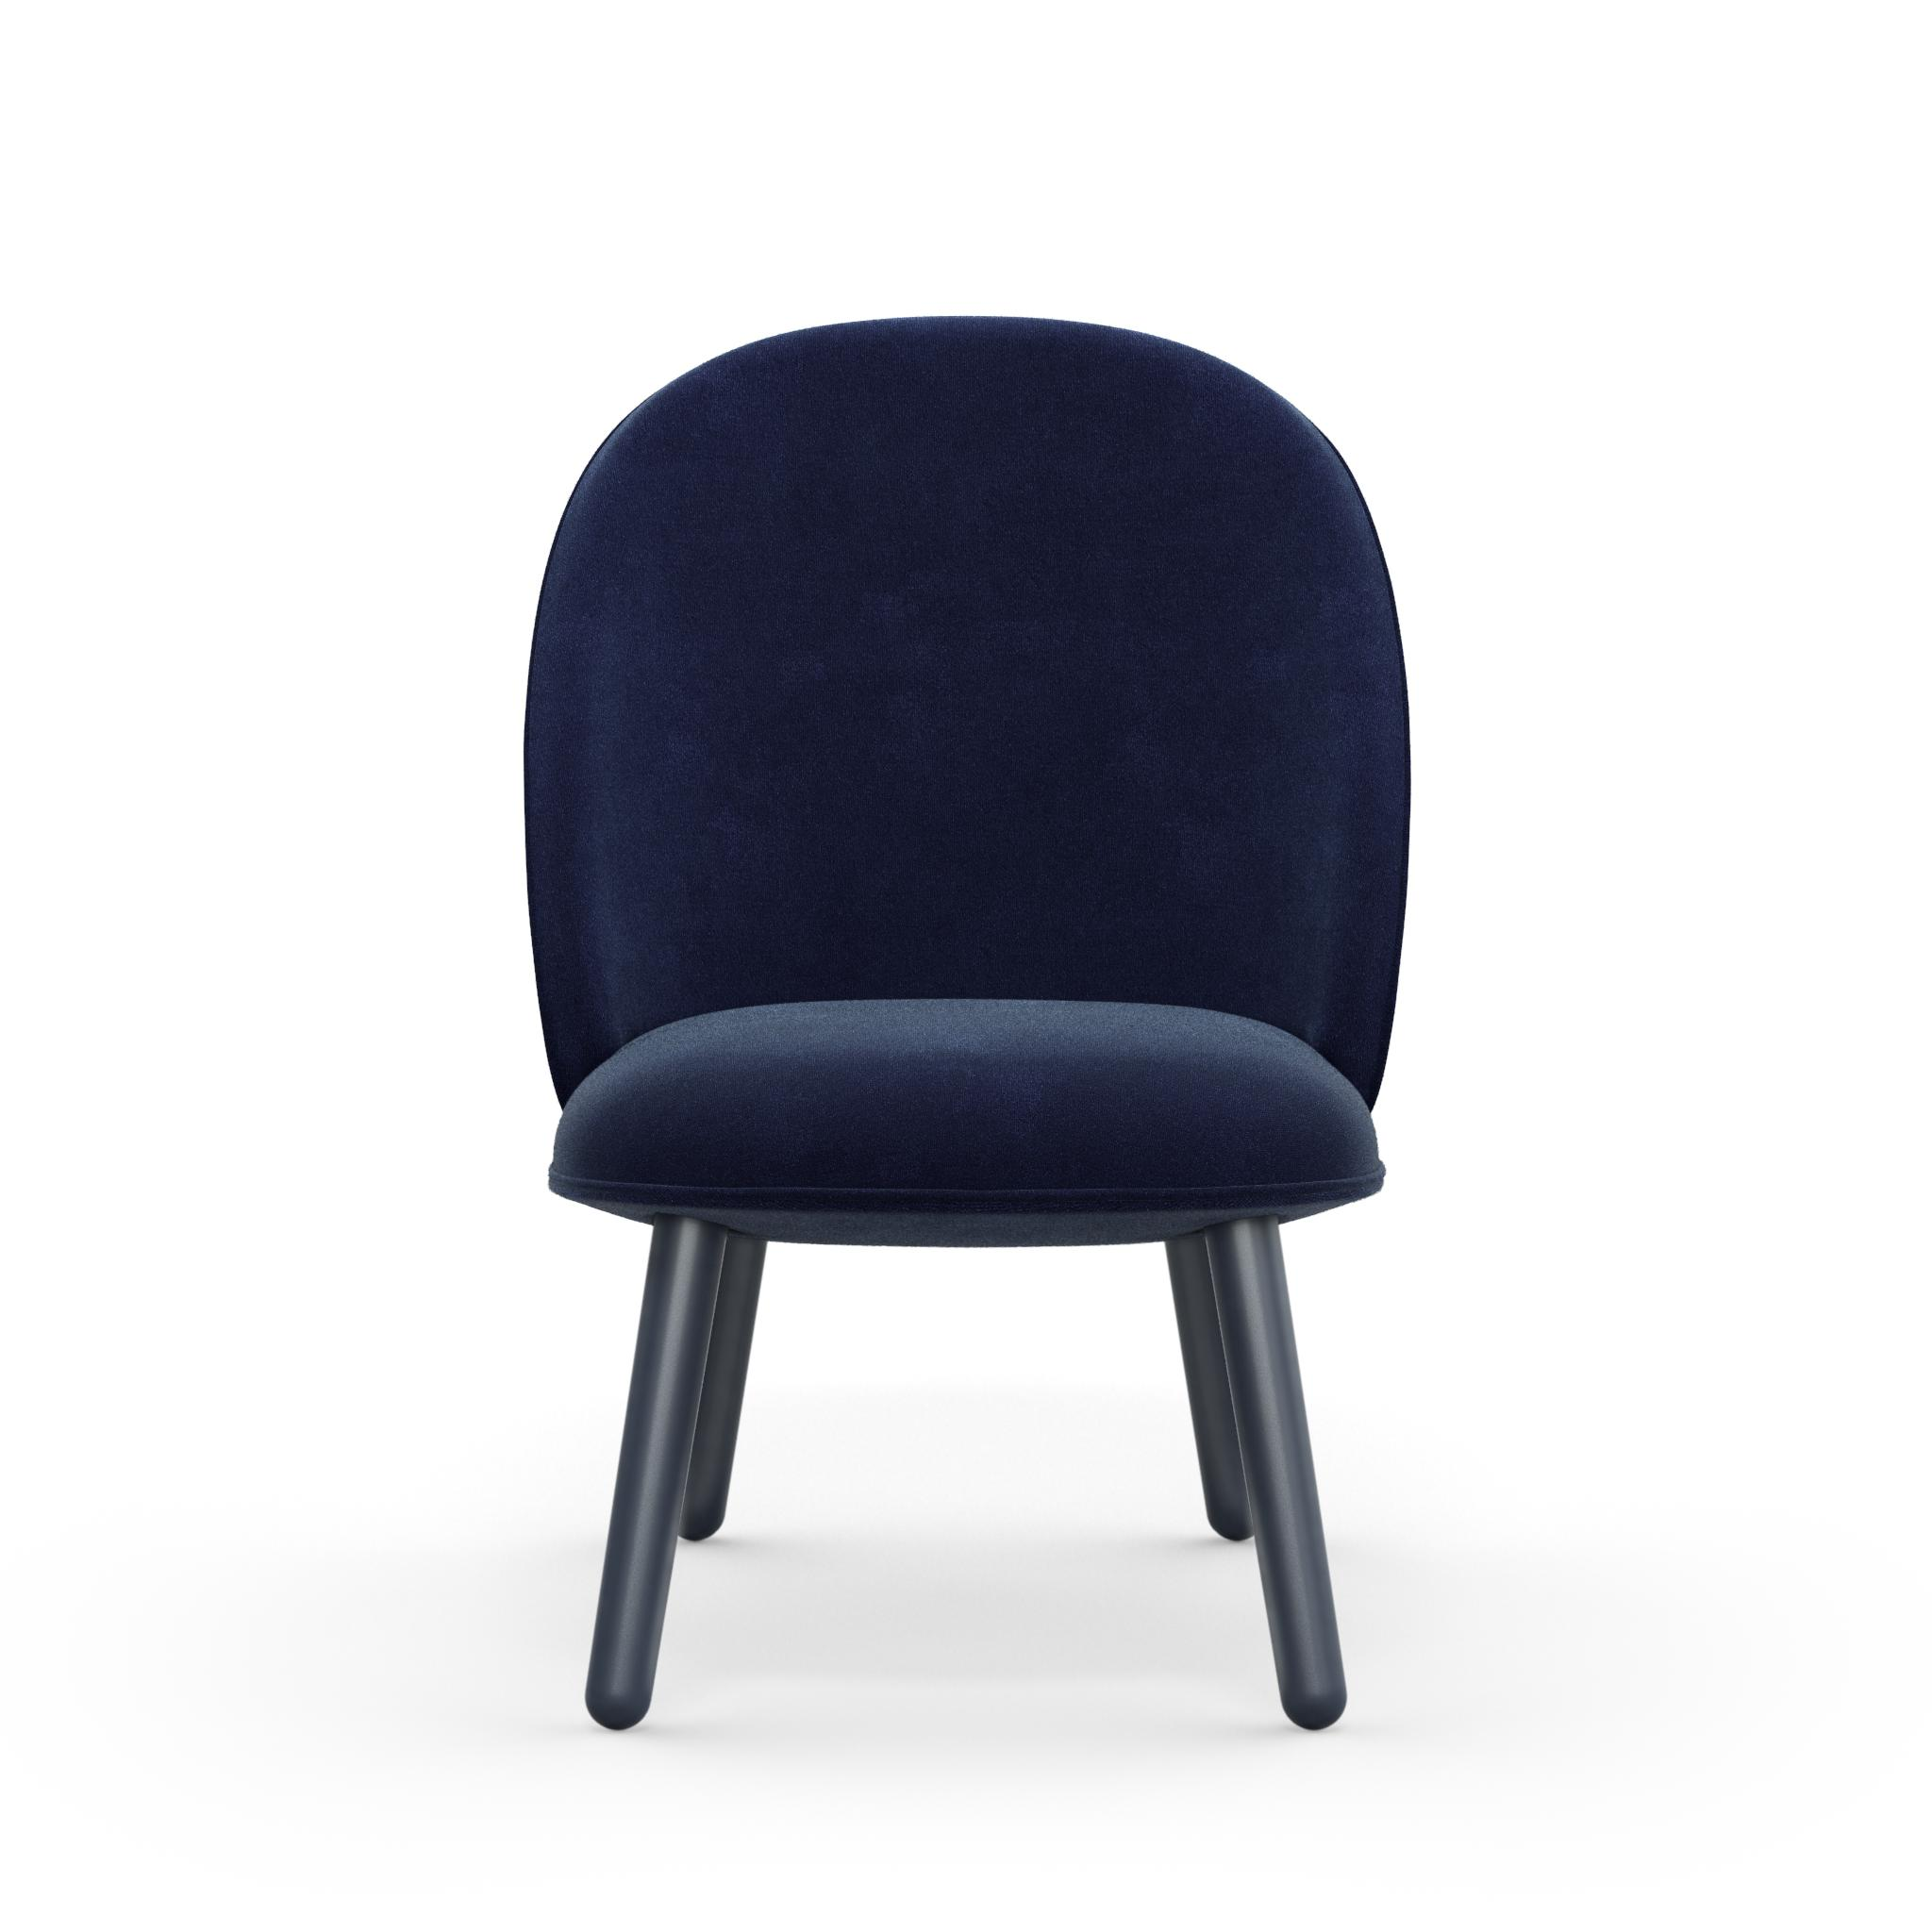 Normann Copenhagen Ace Lounge Chair Blau Möbel Bär Ag